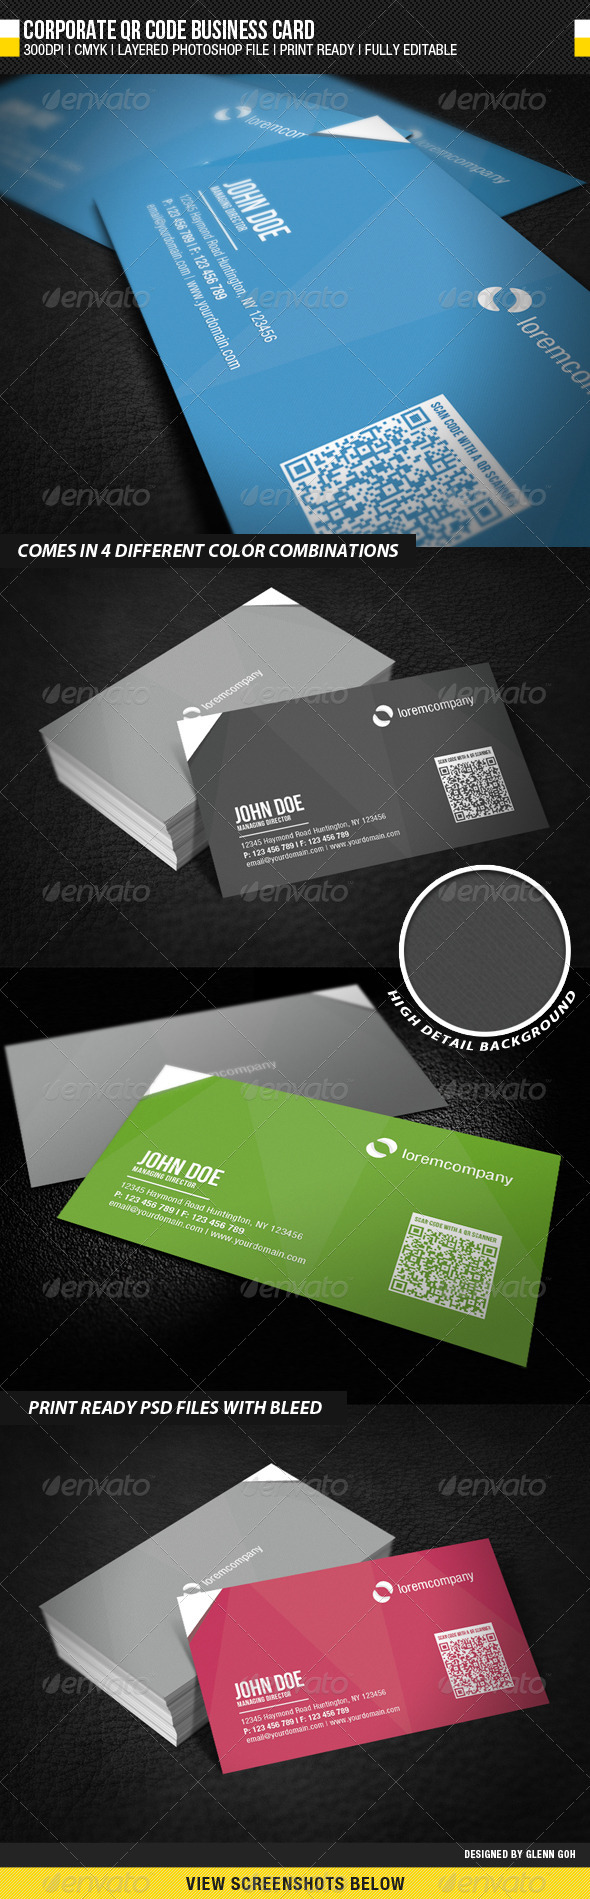 Corporate QR Code Business Card - Corporate Business Cards